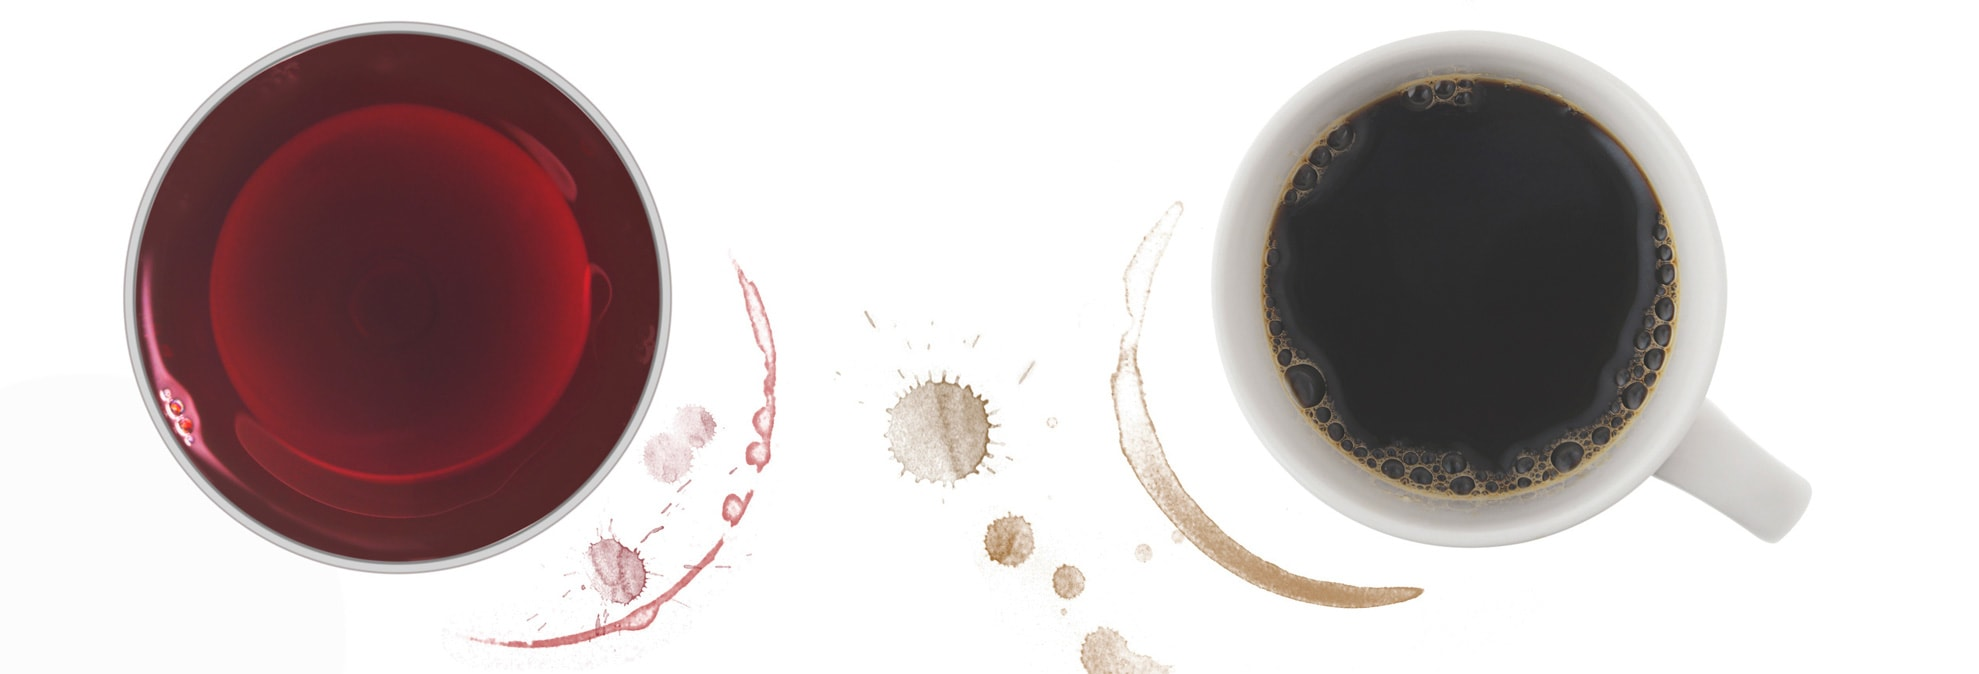 Health Benefits Of Coffee And Wine Consumer Reports